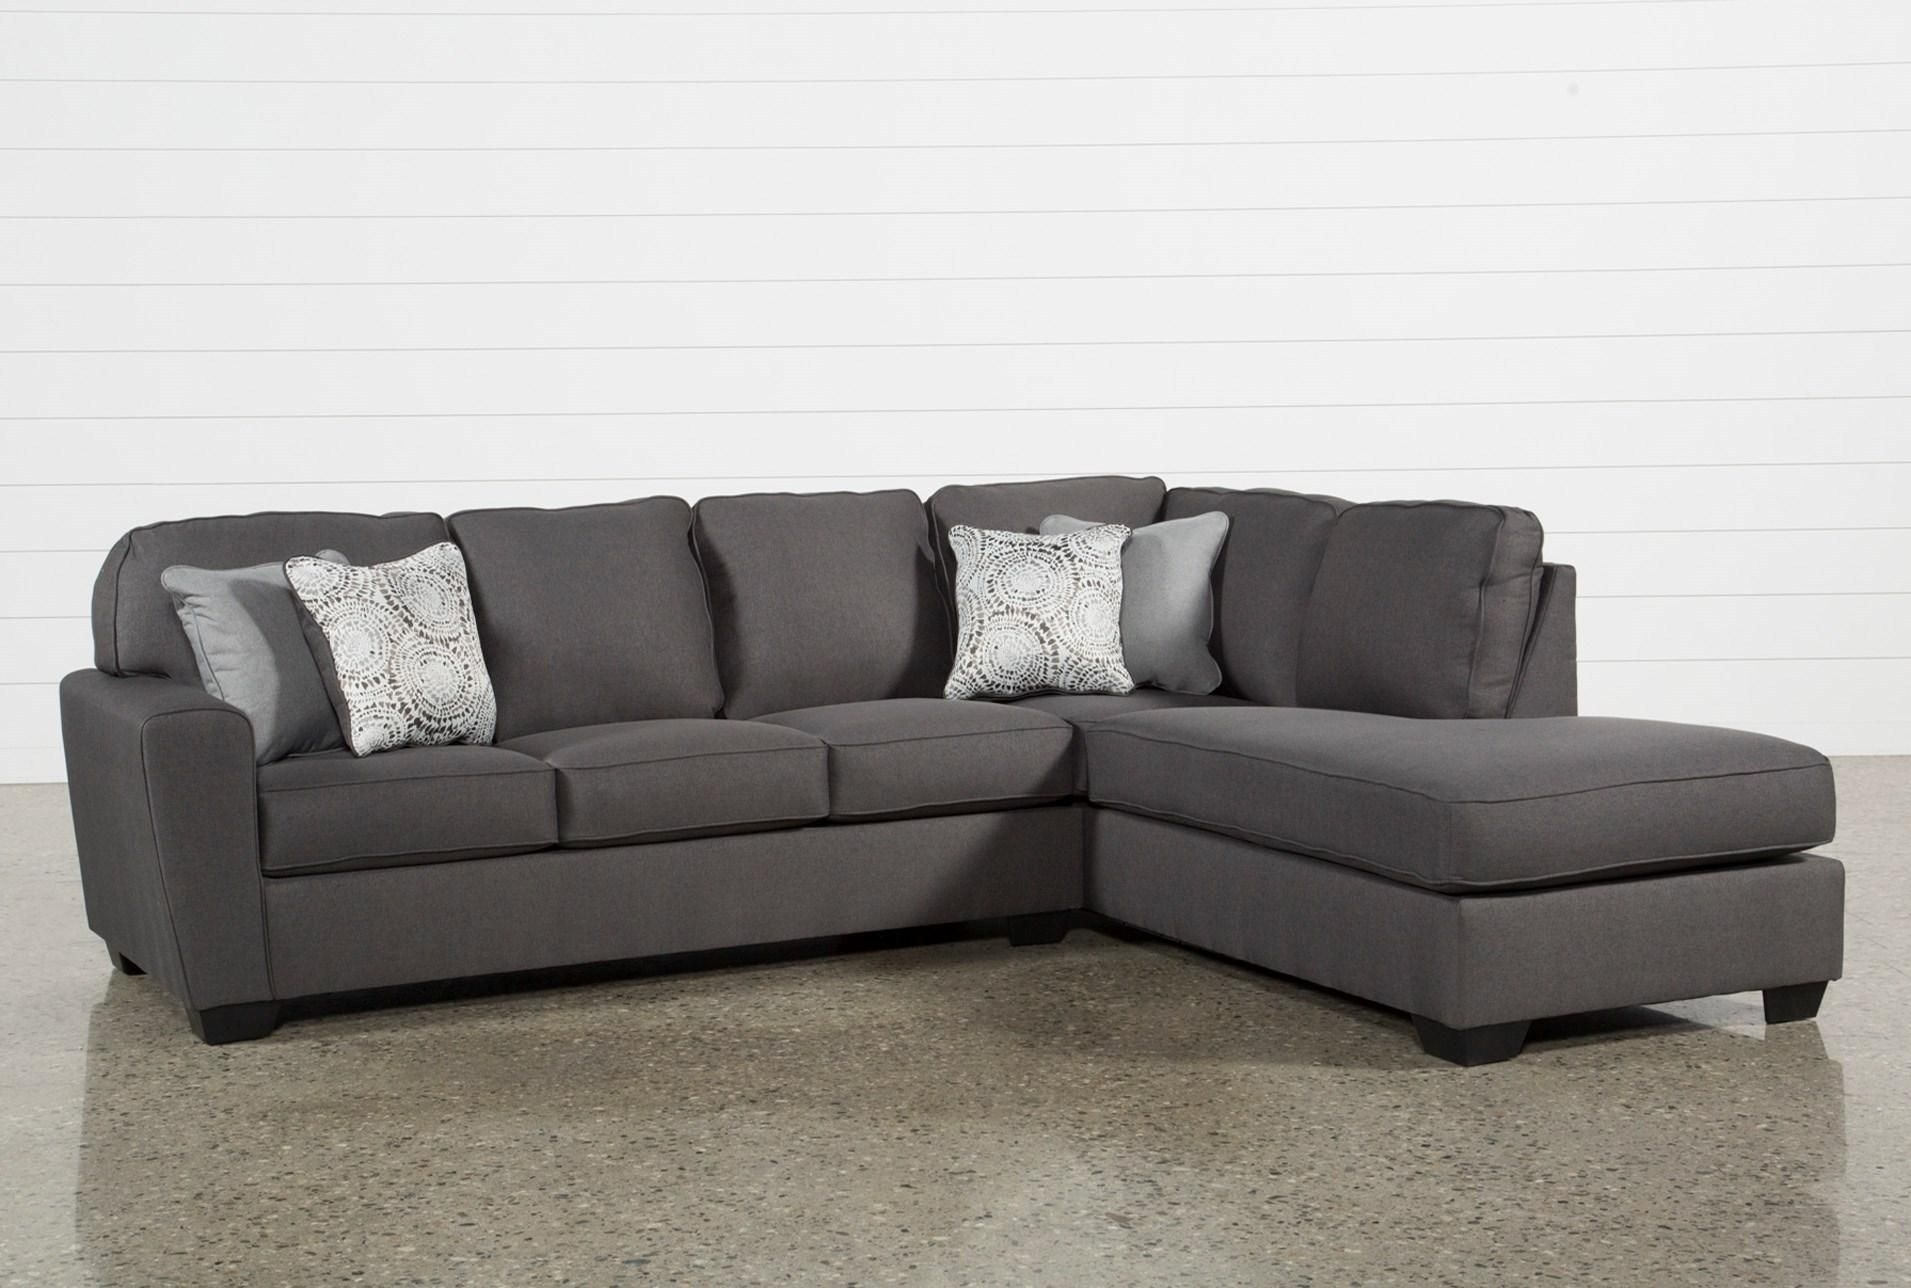 Mcdade Graphite 2 Piece Sectional W/raf Chaise | Livingroom For Arrowmask 2 Piece Sectionals With Laf Chaise (View 12 of 25)